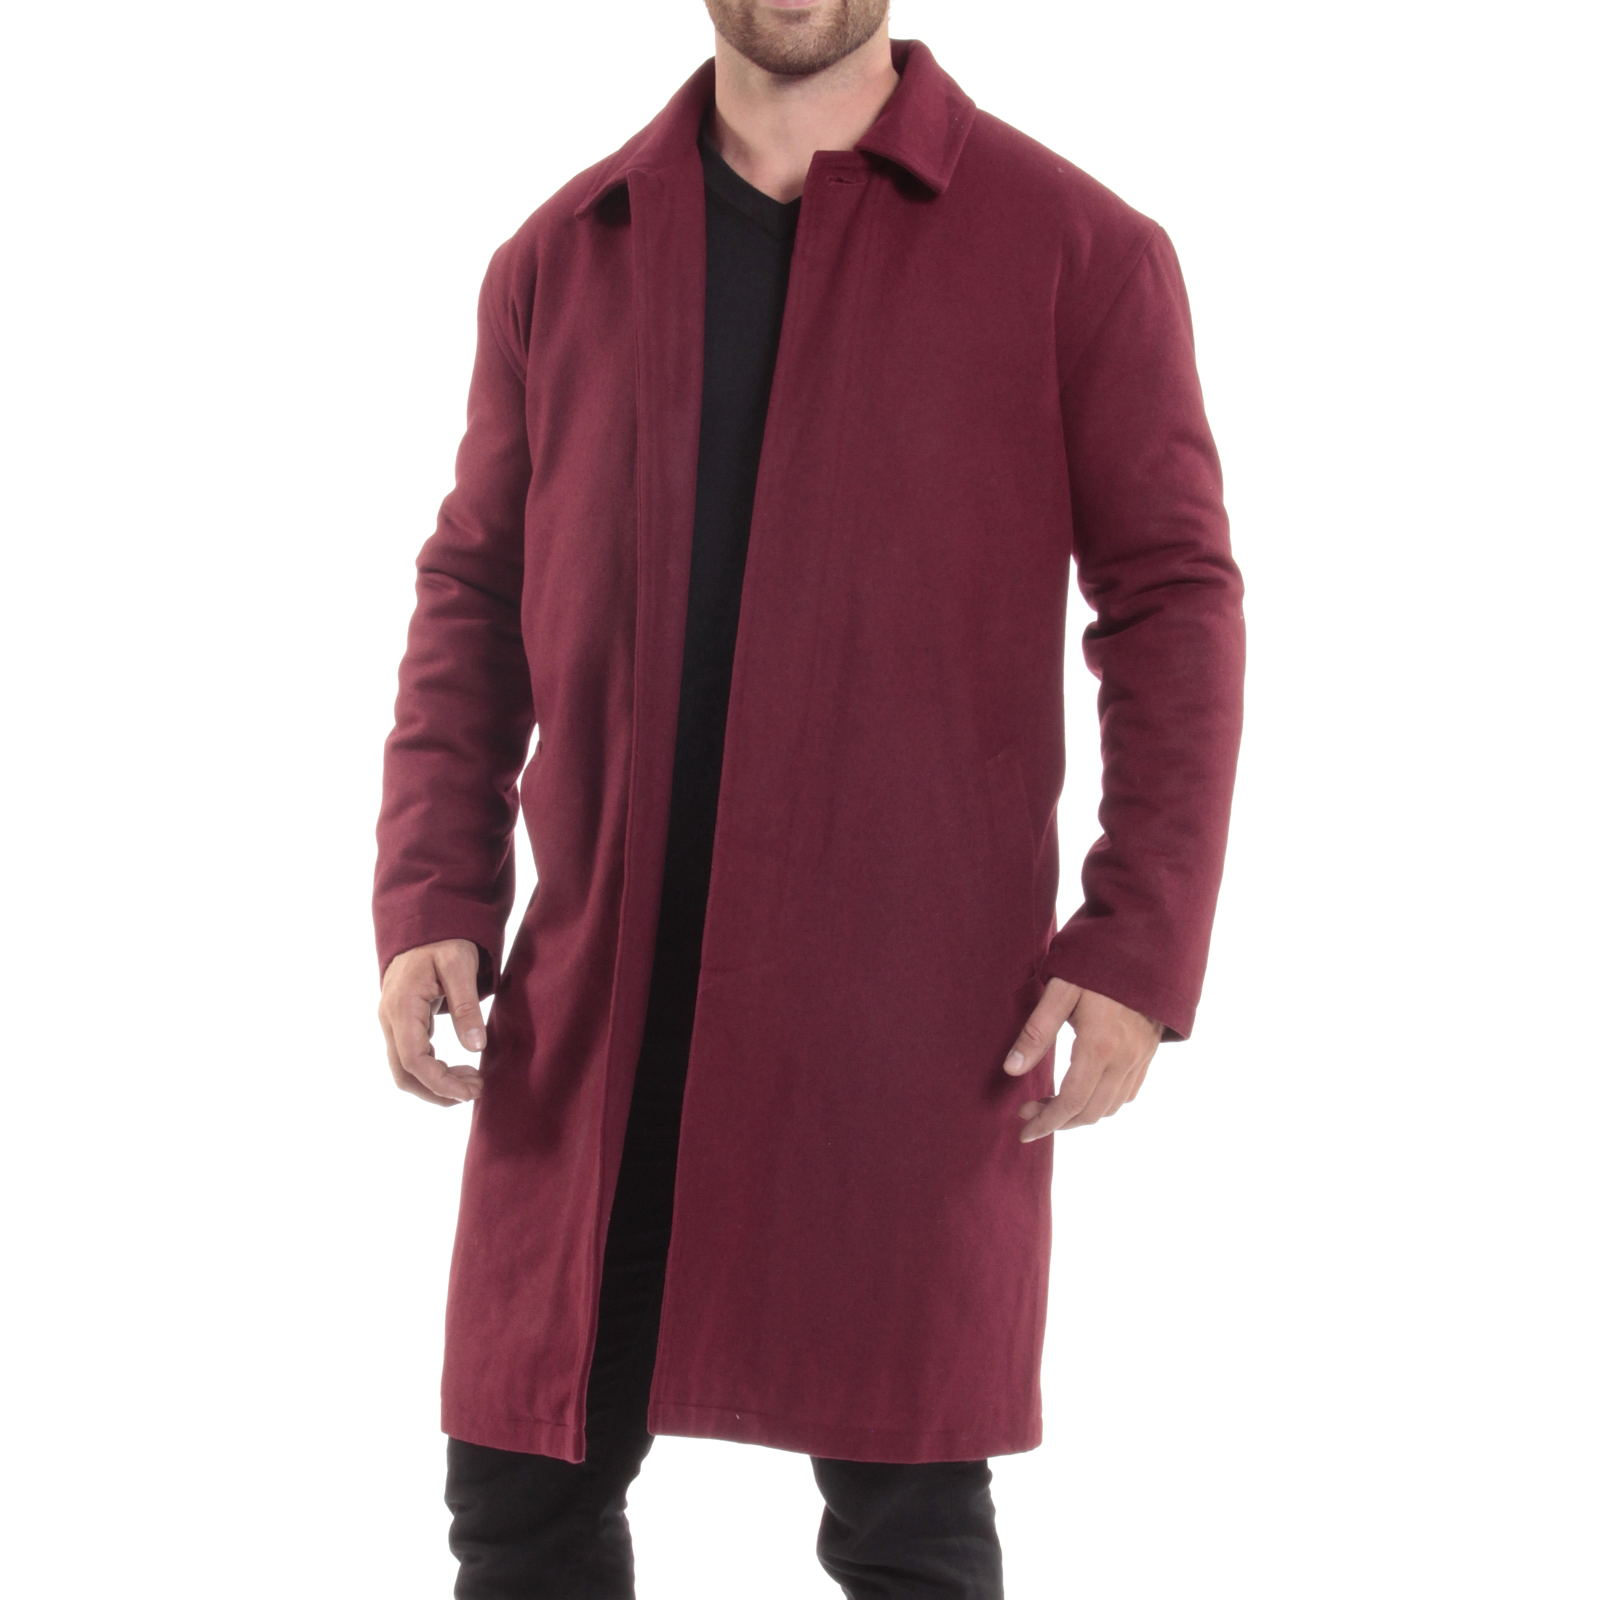 Alpine-Swiss-Mens-Zach-Knee-Length-Jacket-Top-Coat-Trench-Wool-Blend-Overcoat thumbnail 26